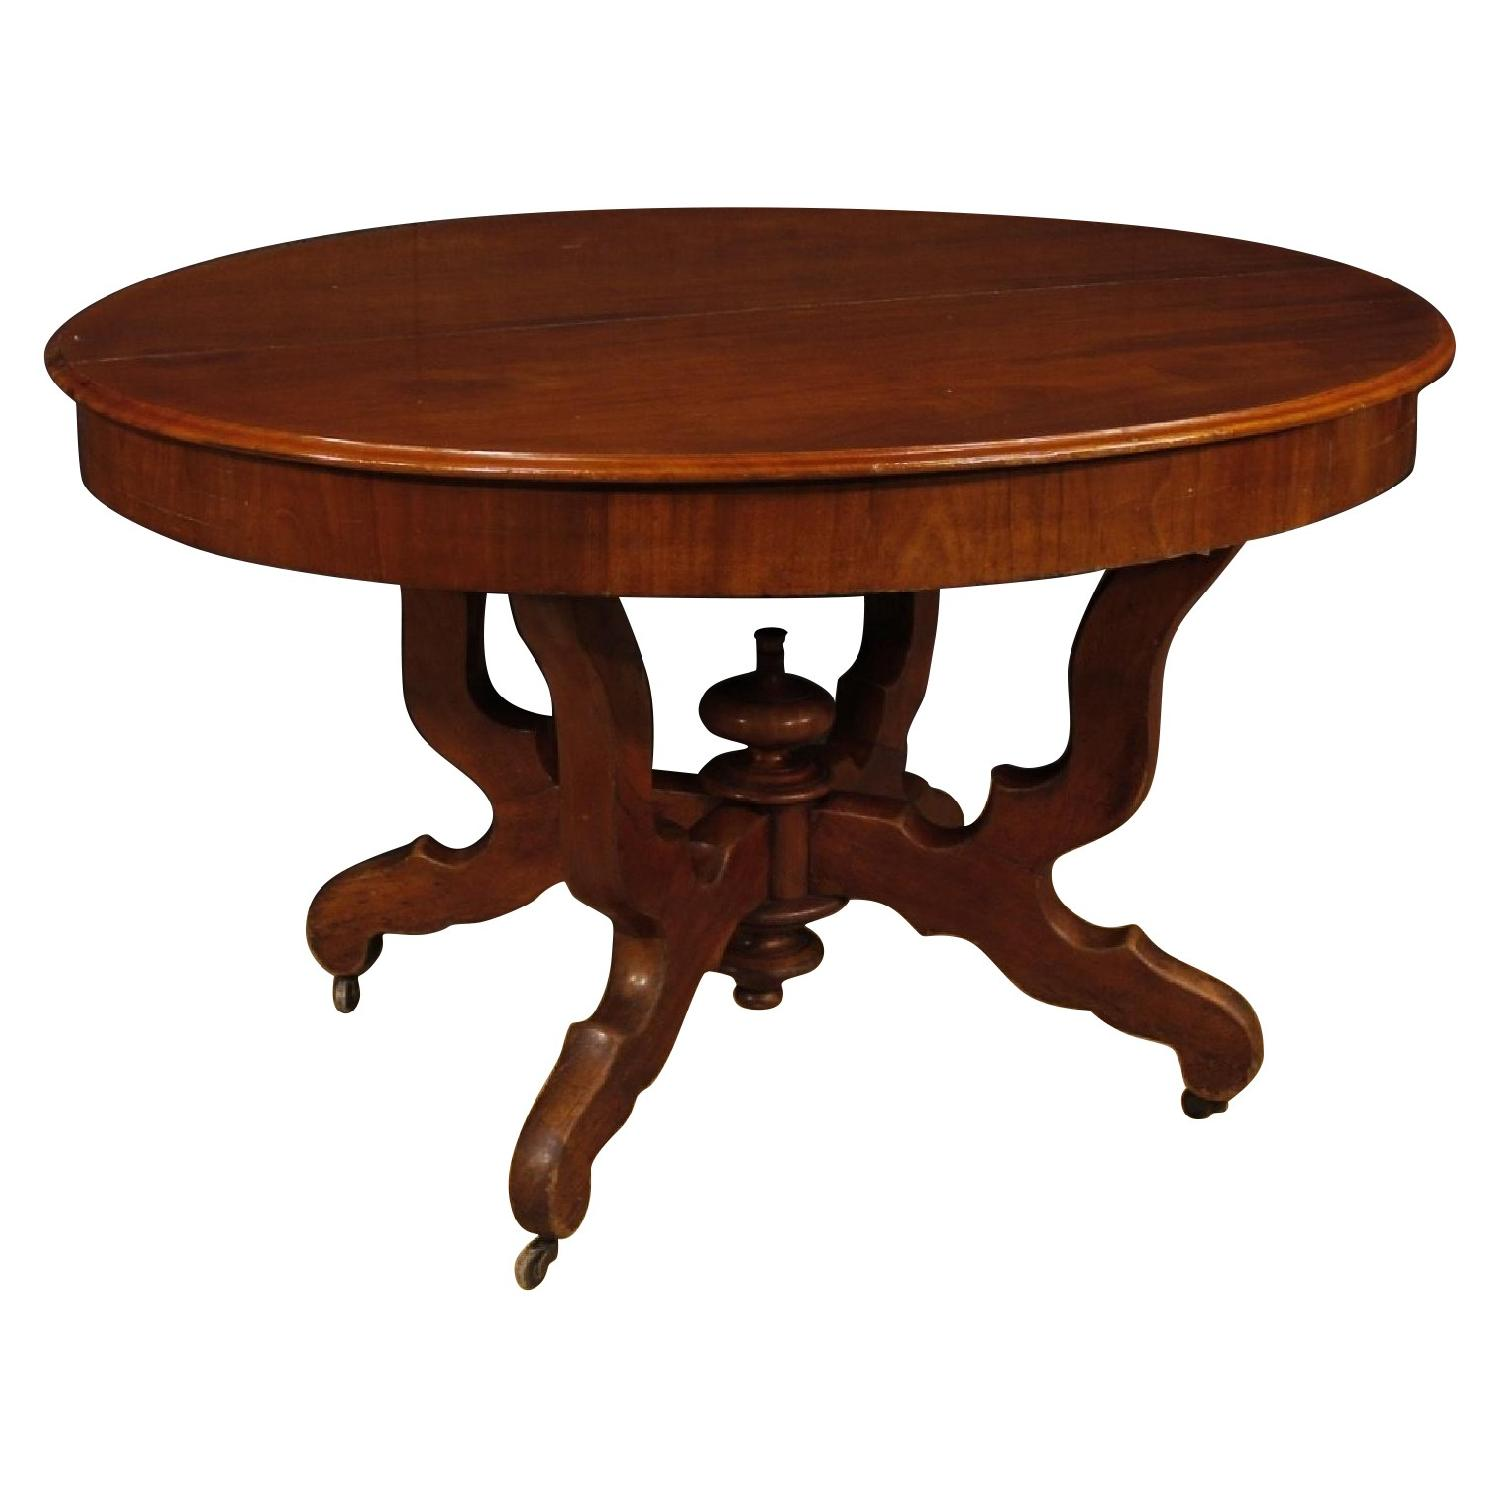 Extendable Dutch Dining Table in Carved Mahogany Wood